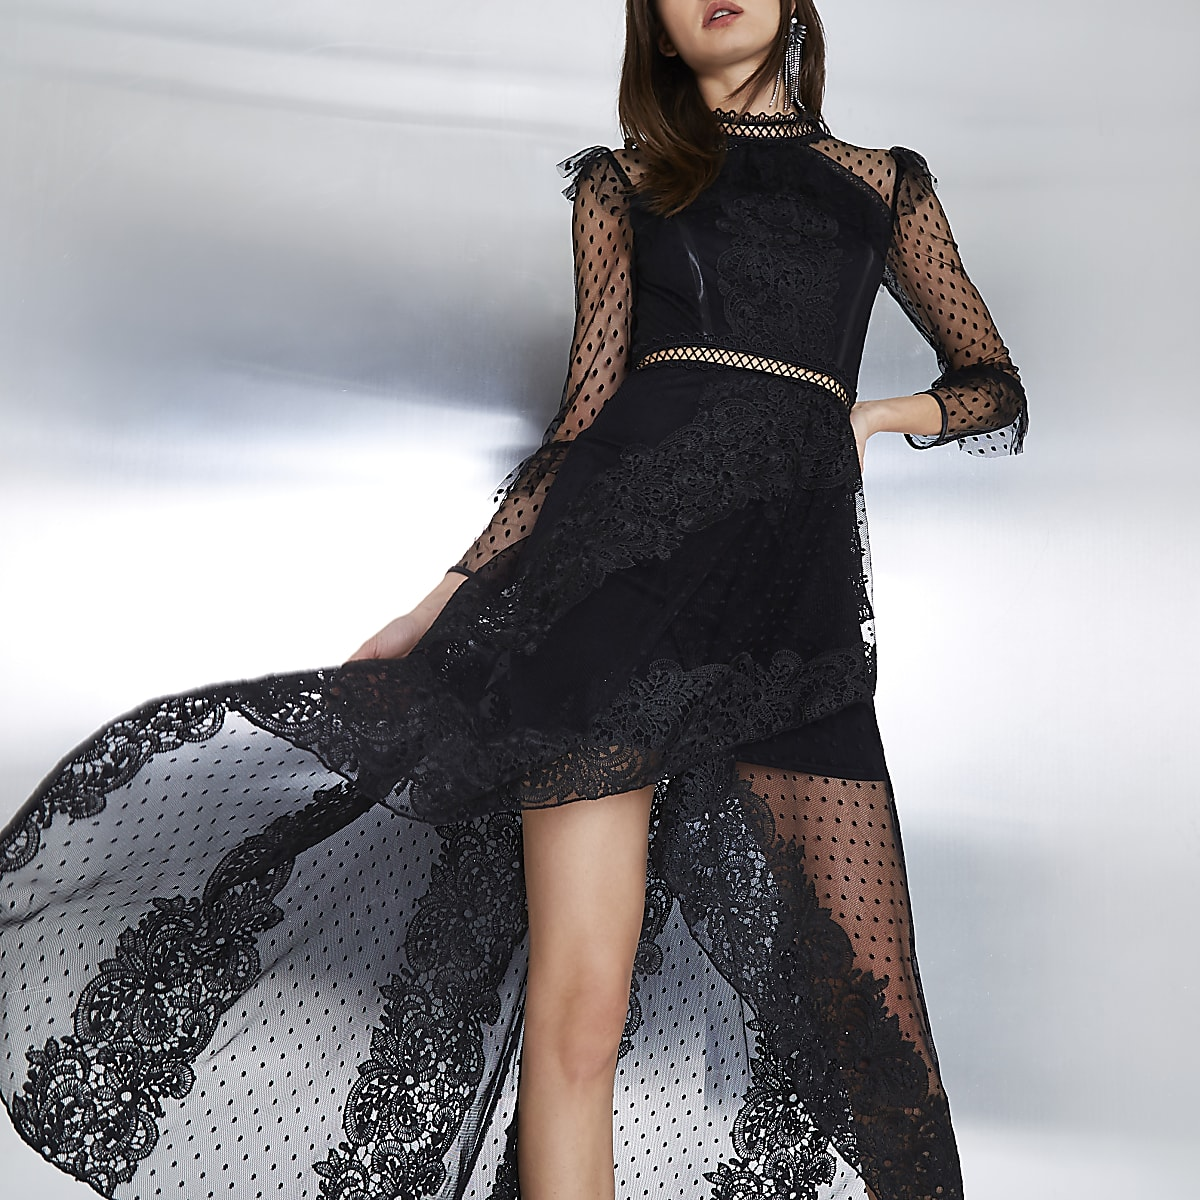 ac860ca422d Black long sleeve lace mesh maxi dress - Maxi Dresses - Dresses - women